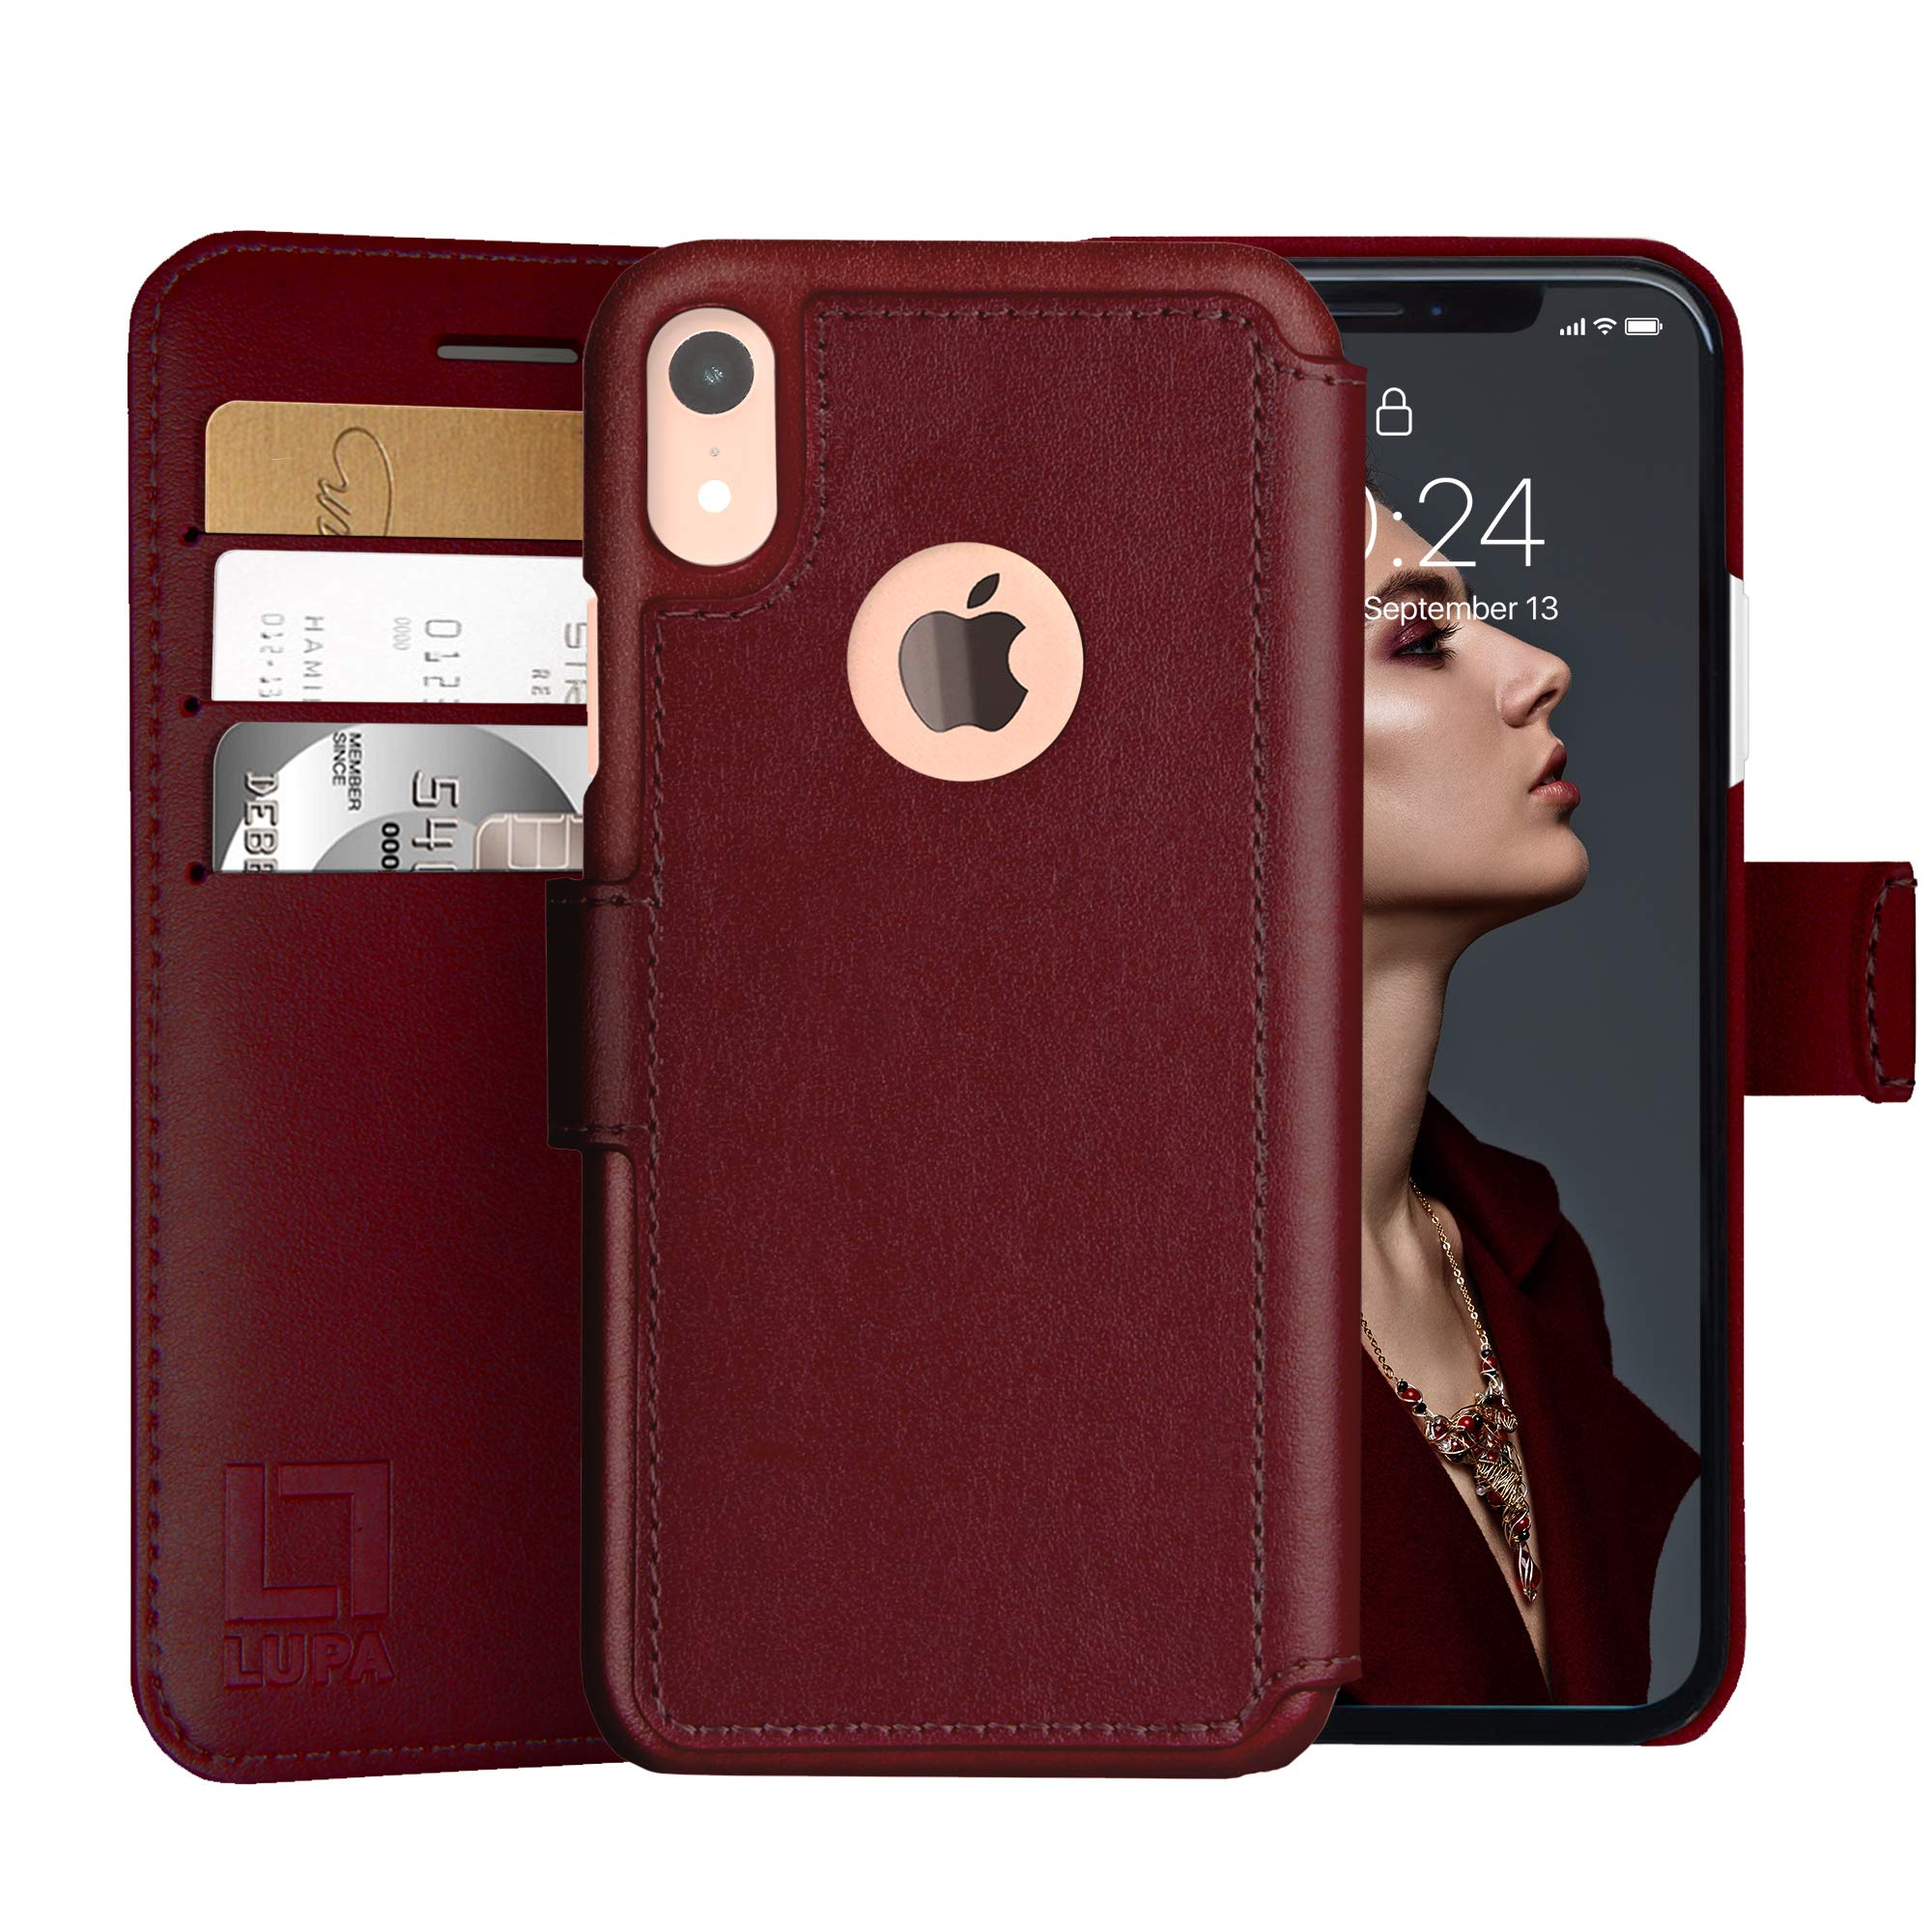 LUPA iPhone XR Wallet case, Durable and Slim, Lightweight with Classic Design & Ultra-Strong Magnetic Closure, Faux Leather, Burgundy, for Apple XR. by LUPA